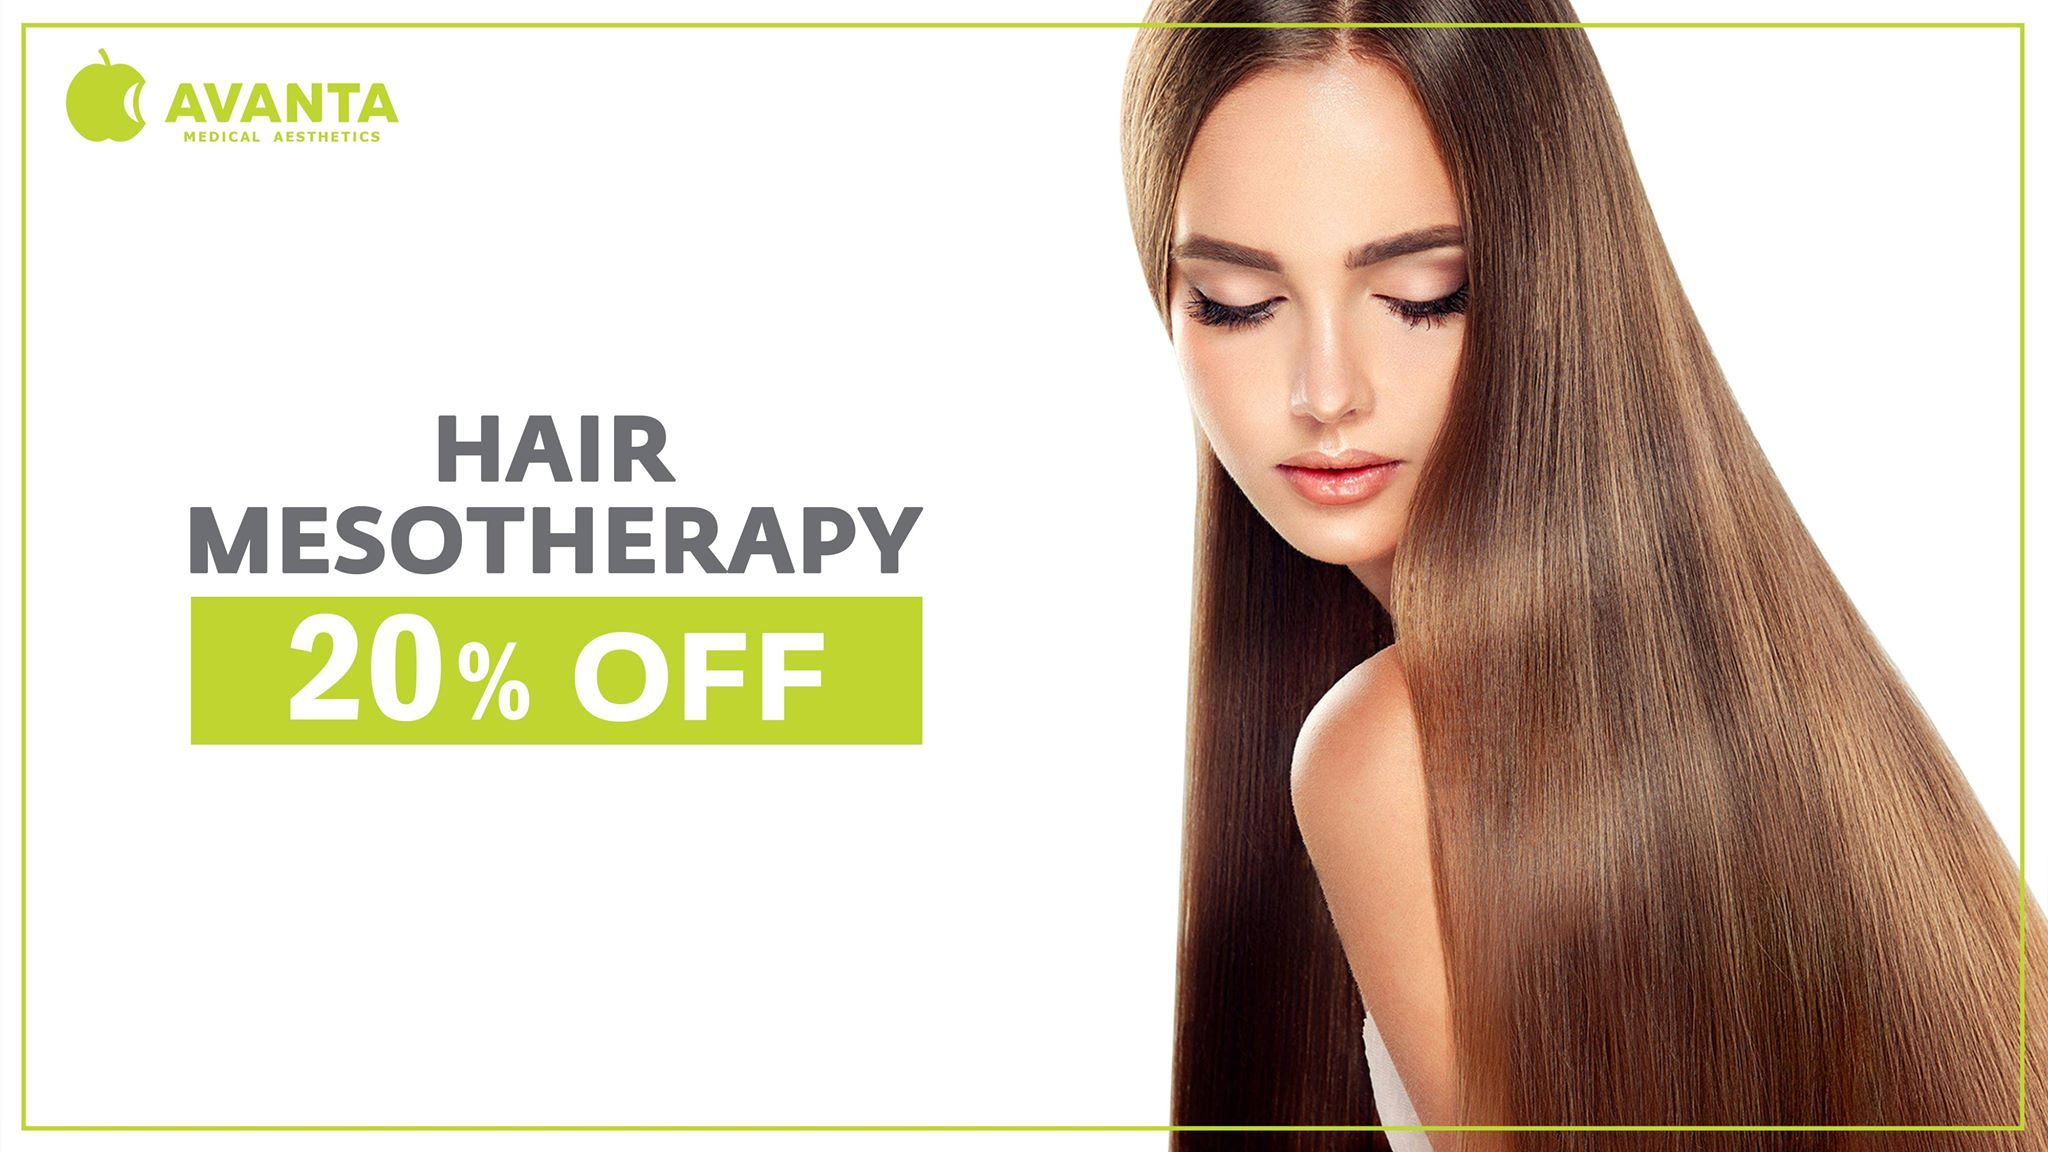 Special Offer for Hair Mesotherapy